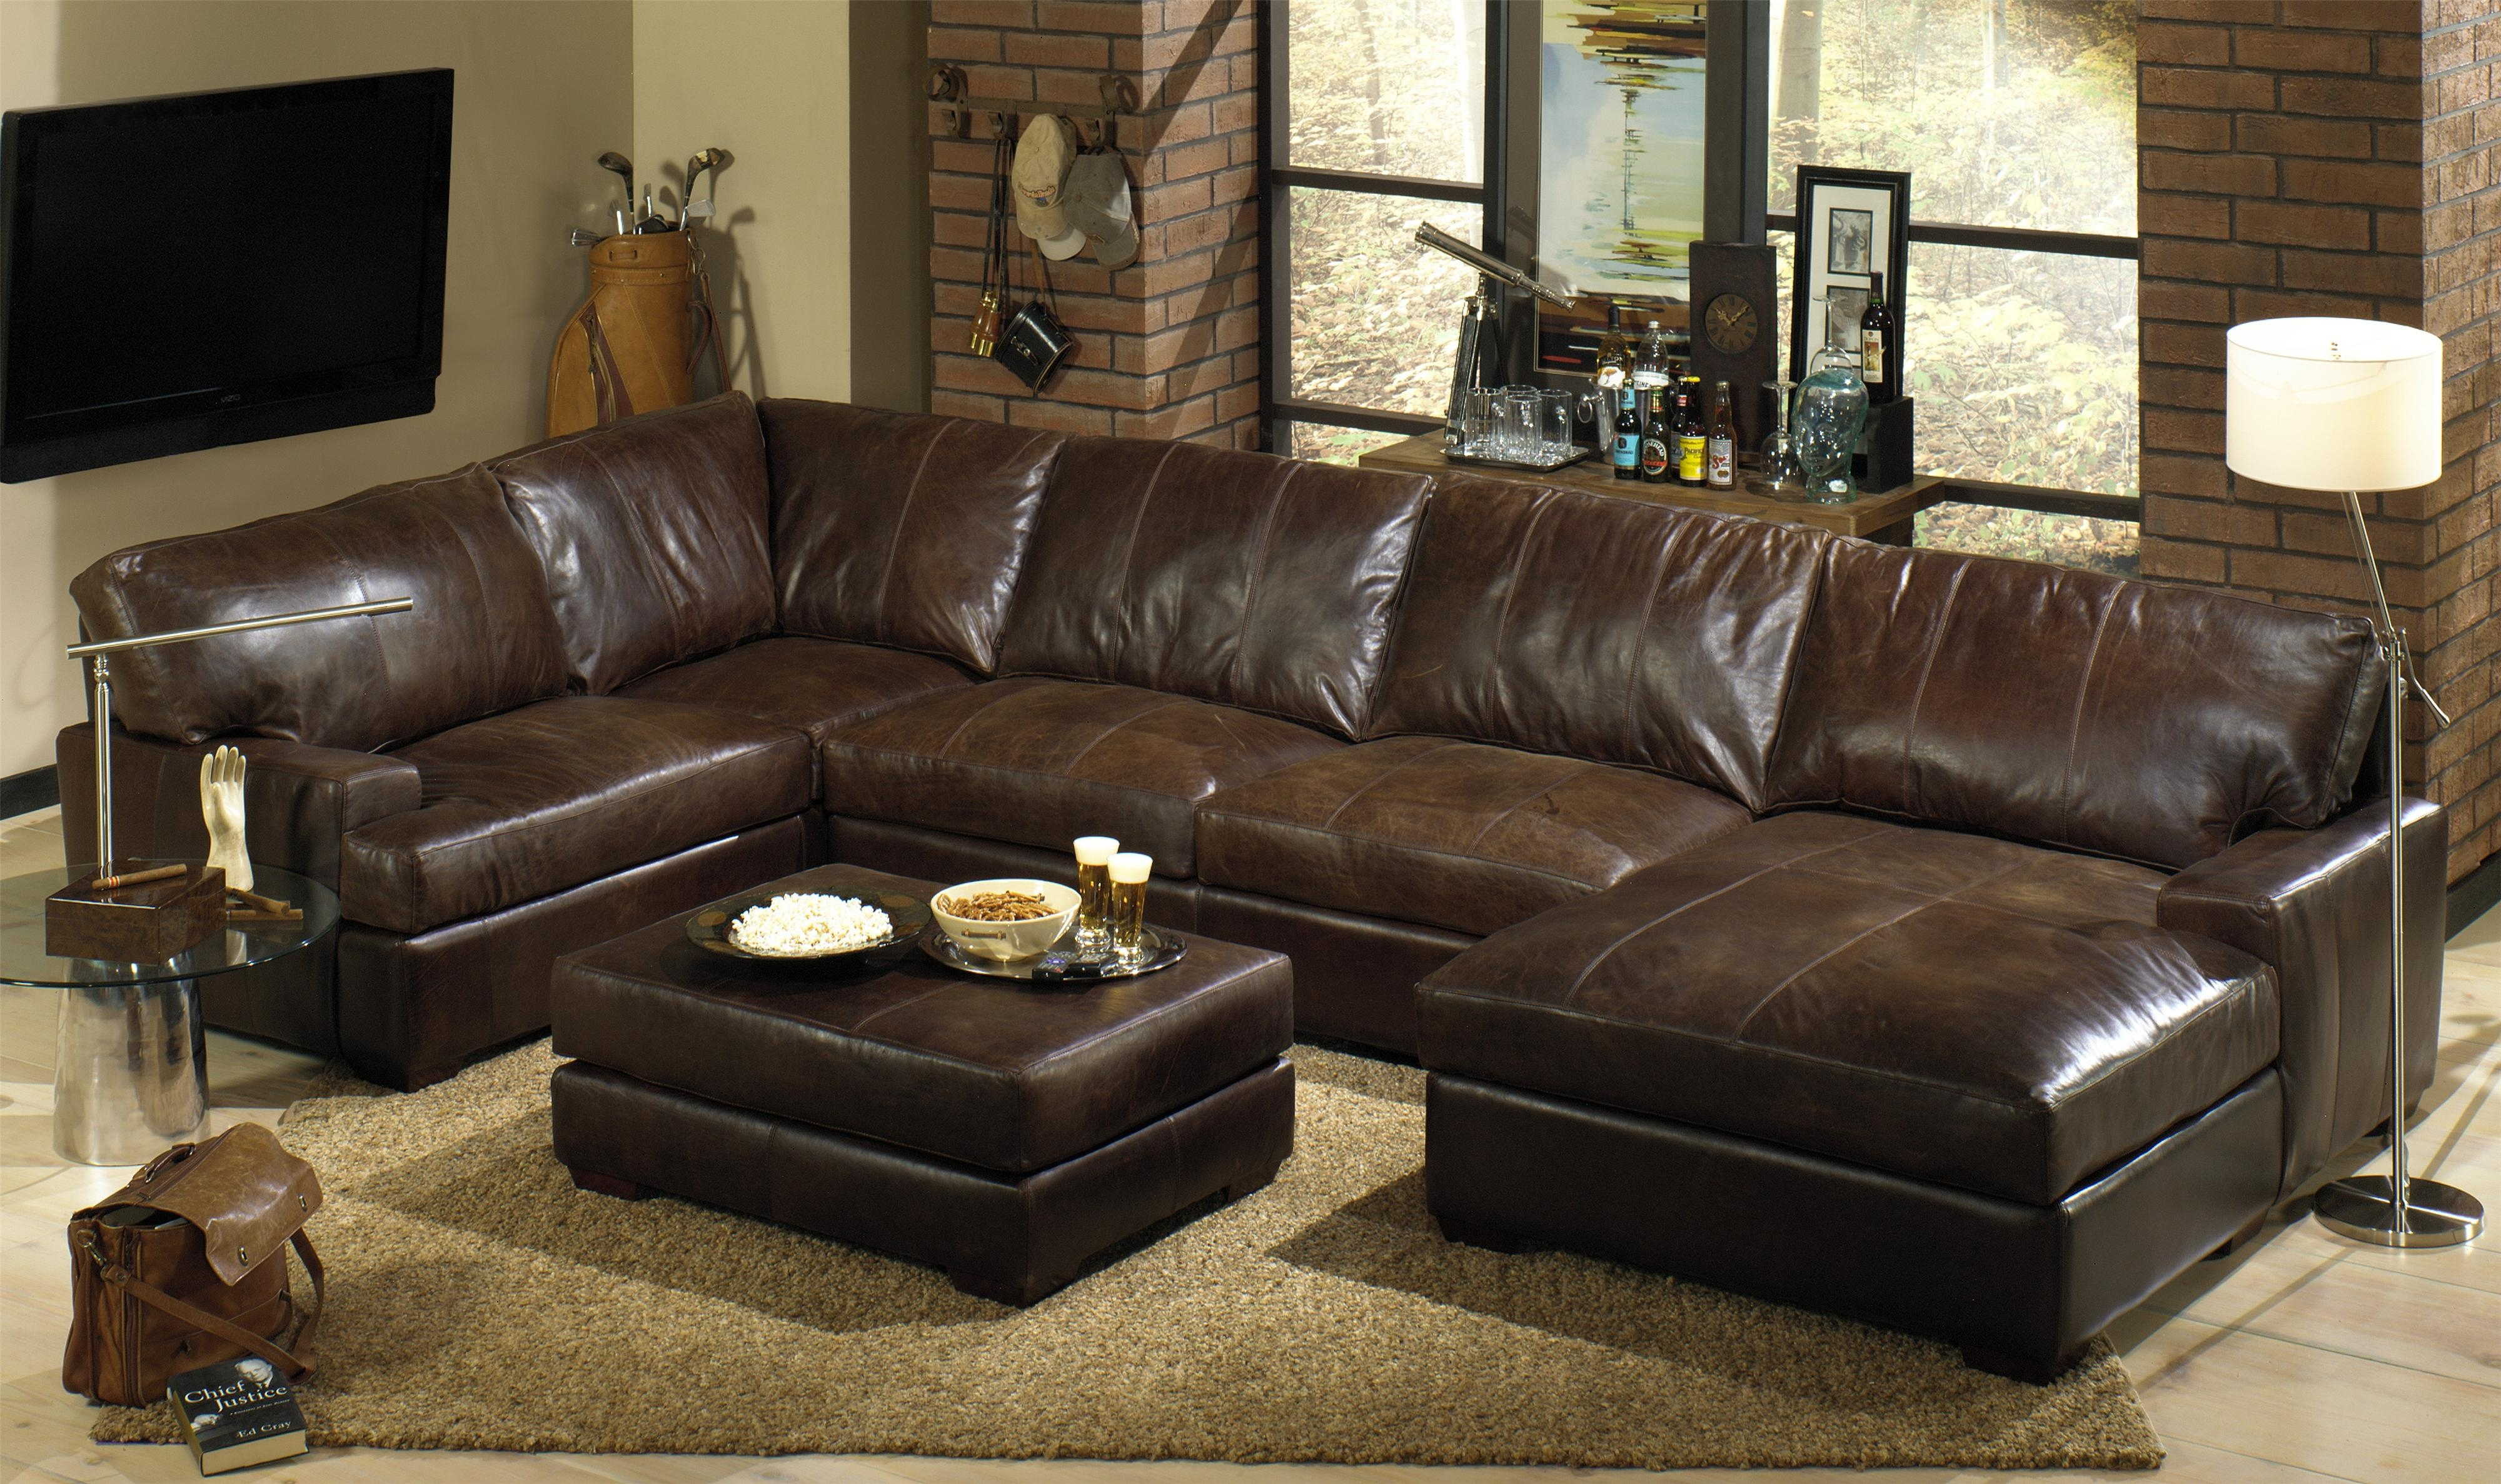 Enchanting Sectional Sofas With Recliners And Sleeper 11 With With 3 Piece Sectional Sofa Slipcovers (#5 of 12)